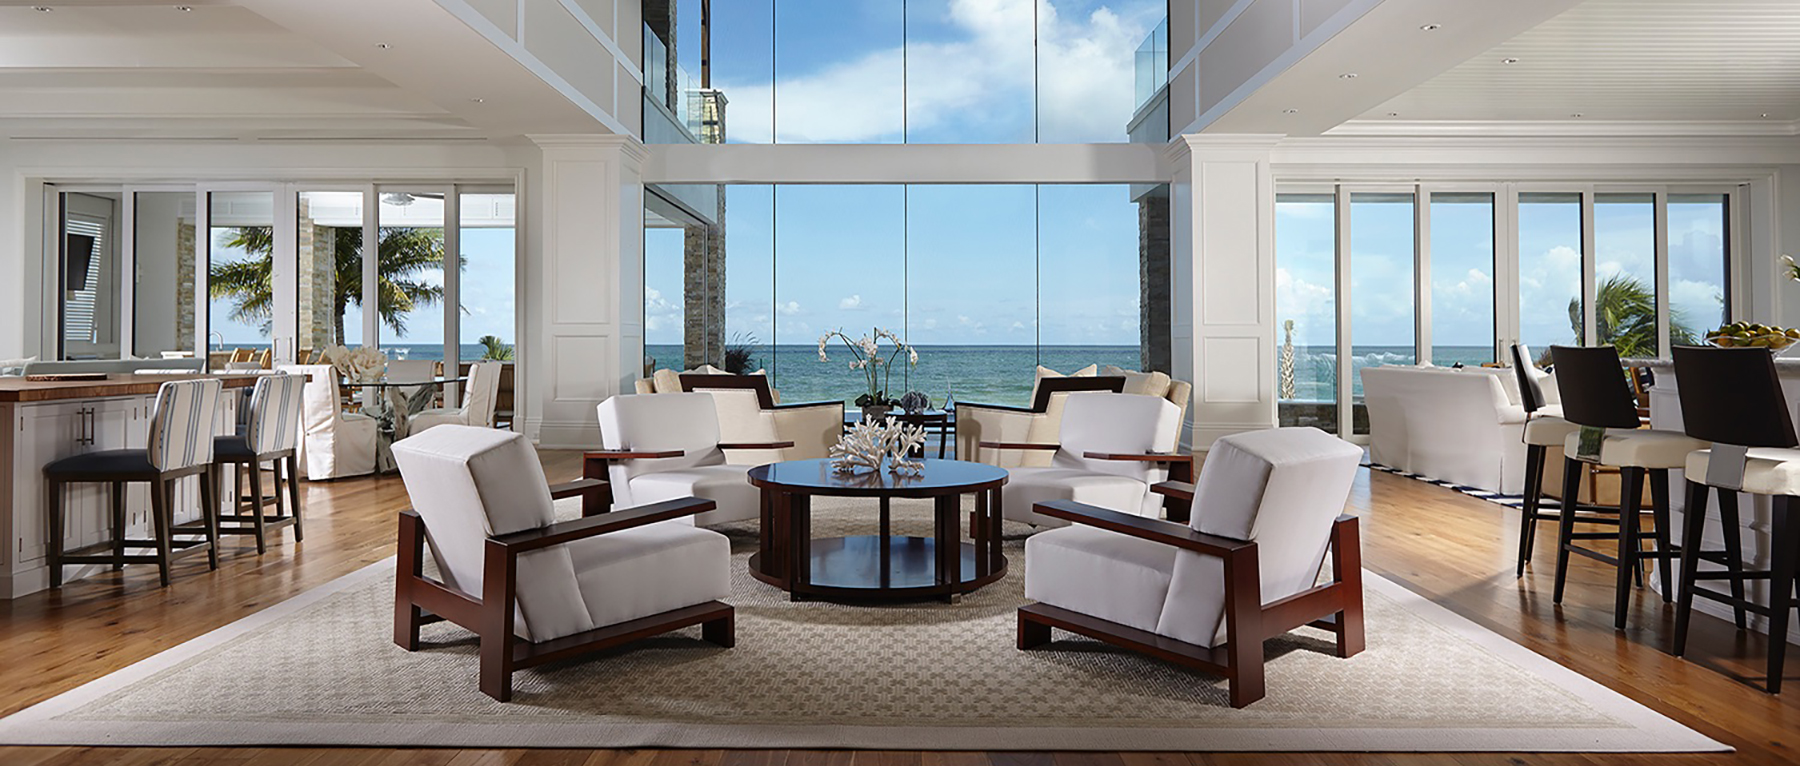 South Florida Interior Design Palm Beach